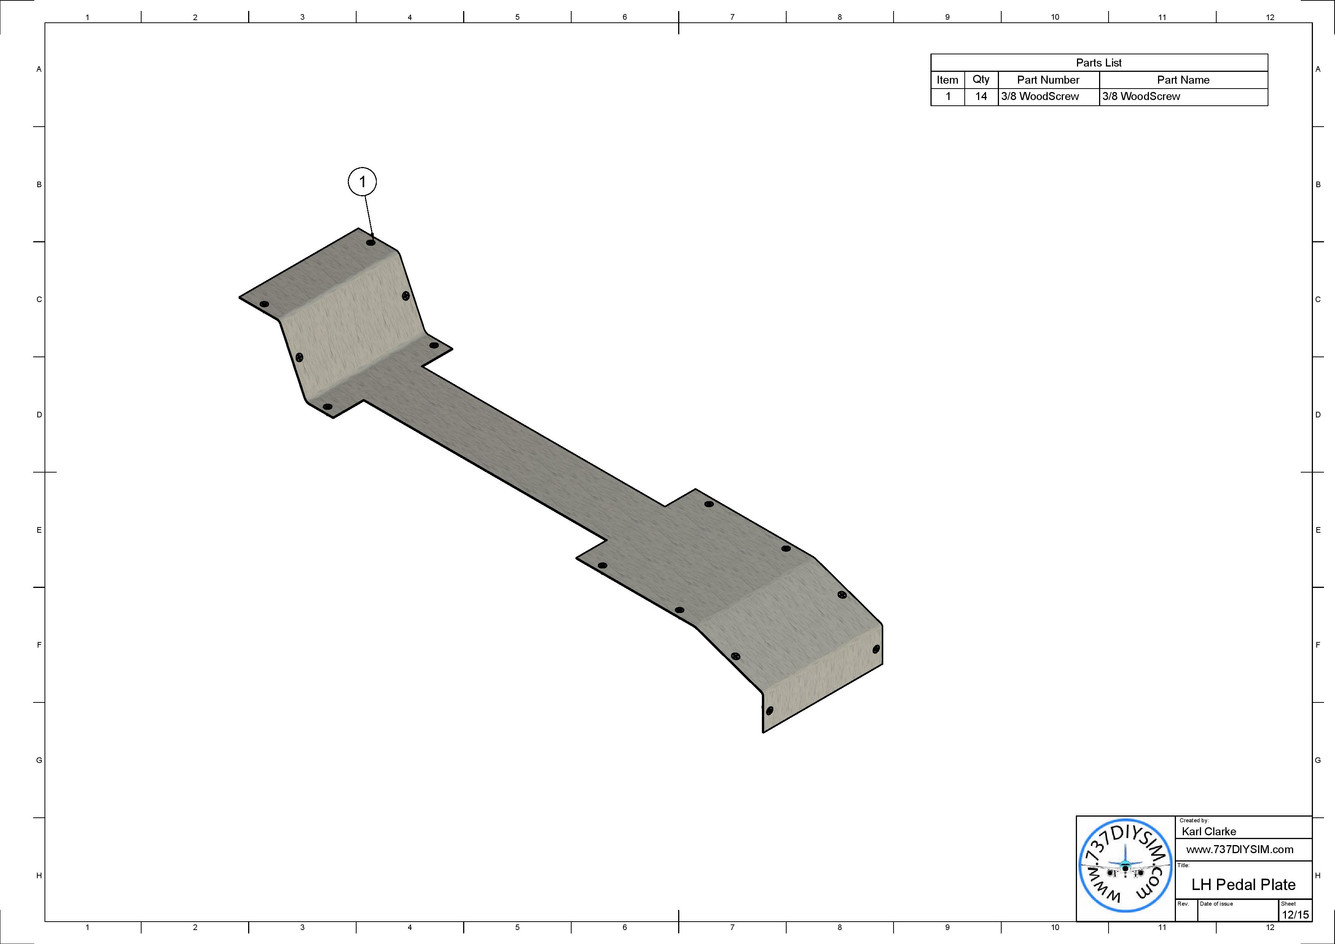 LH Pedal Plate Drawing v1-page-012.jpg